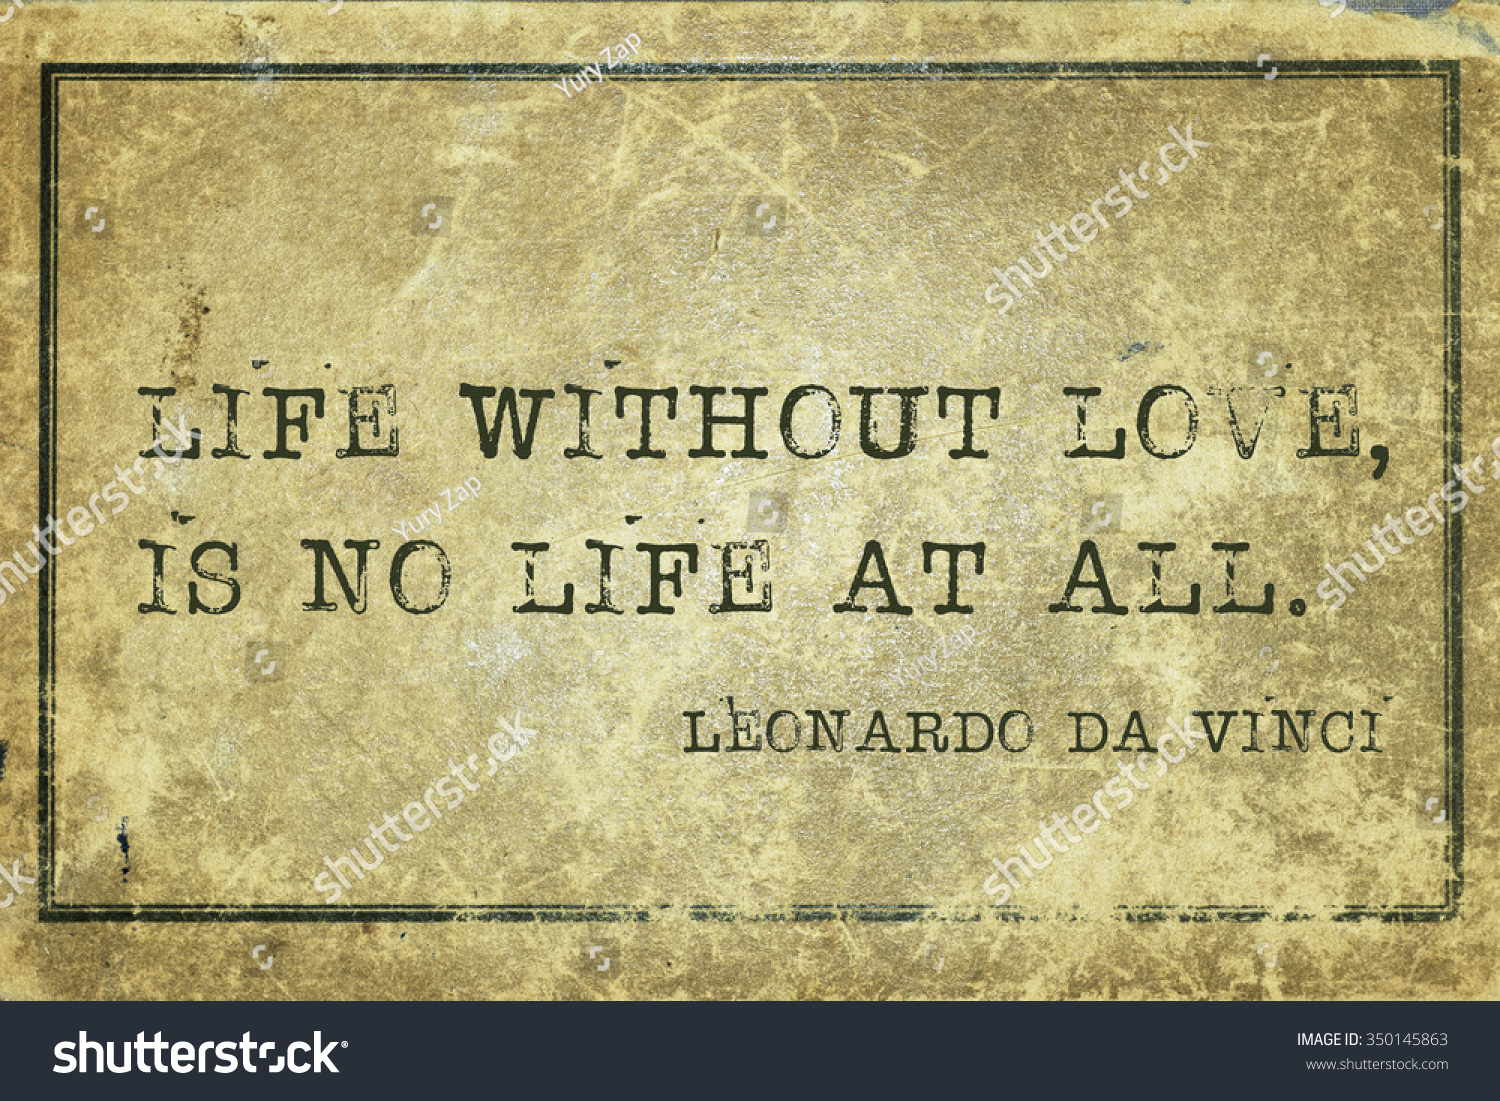 Life Without Love Quotes Life Without Love No Life All Stock Illustration 350145863